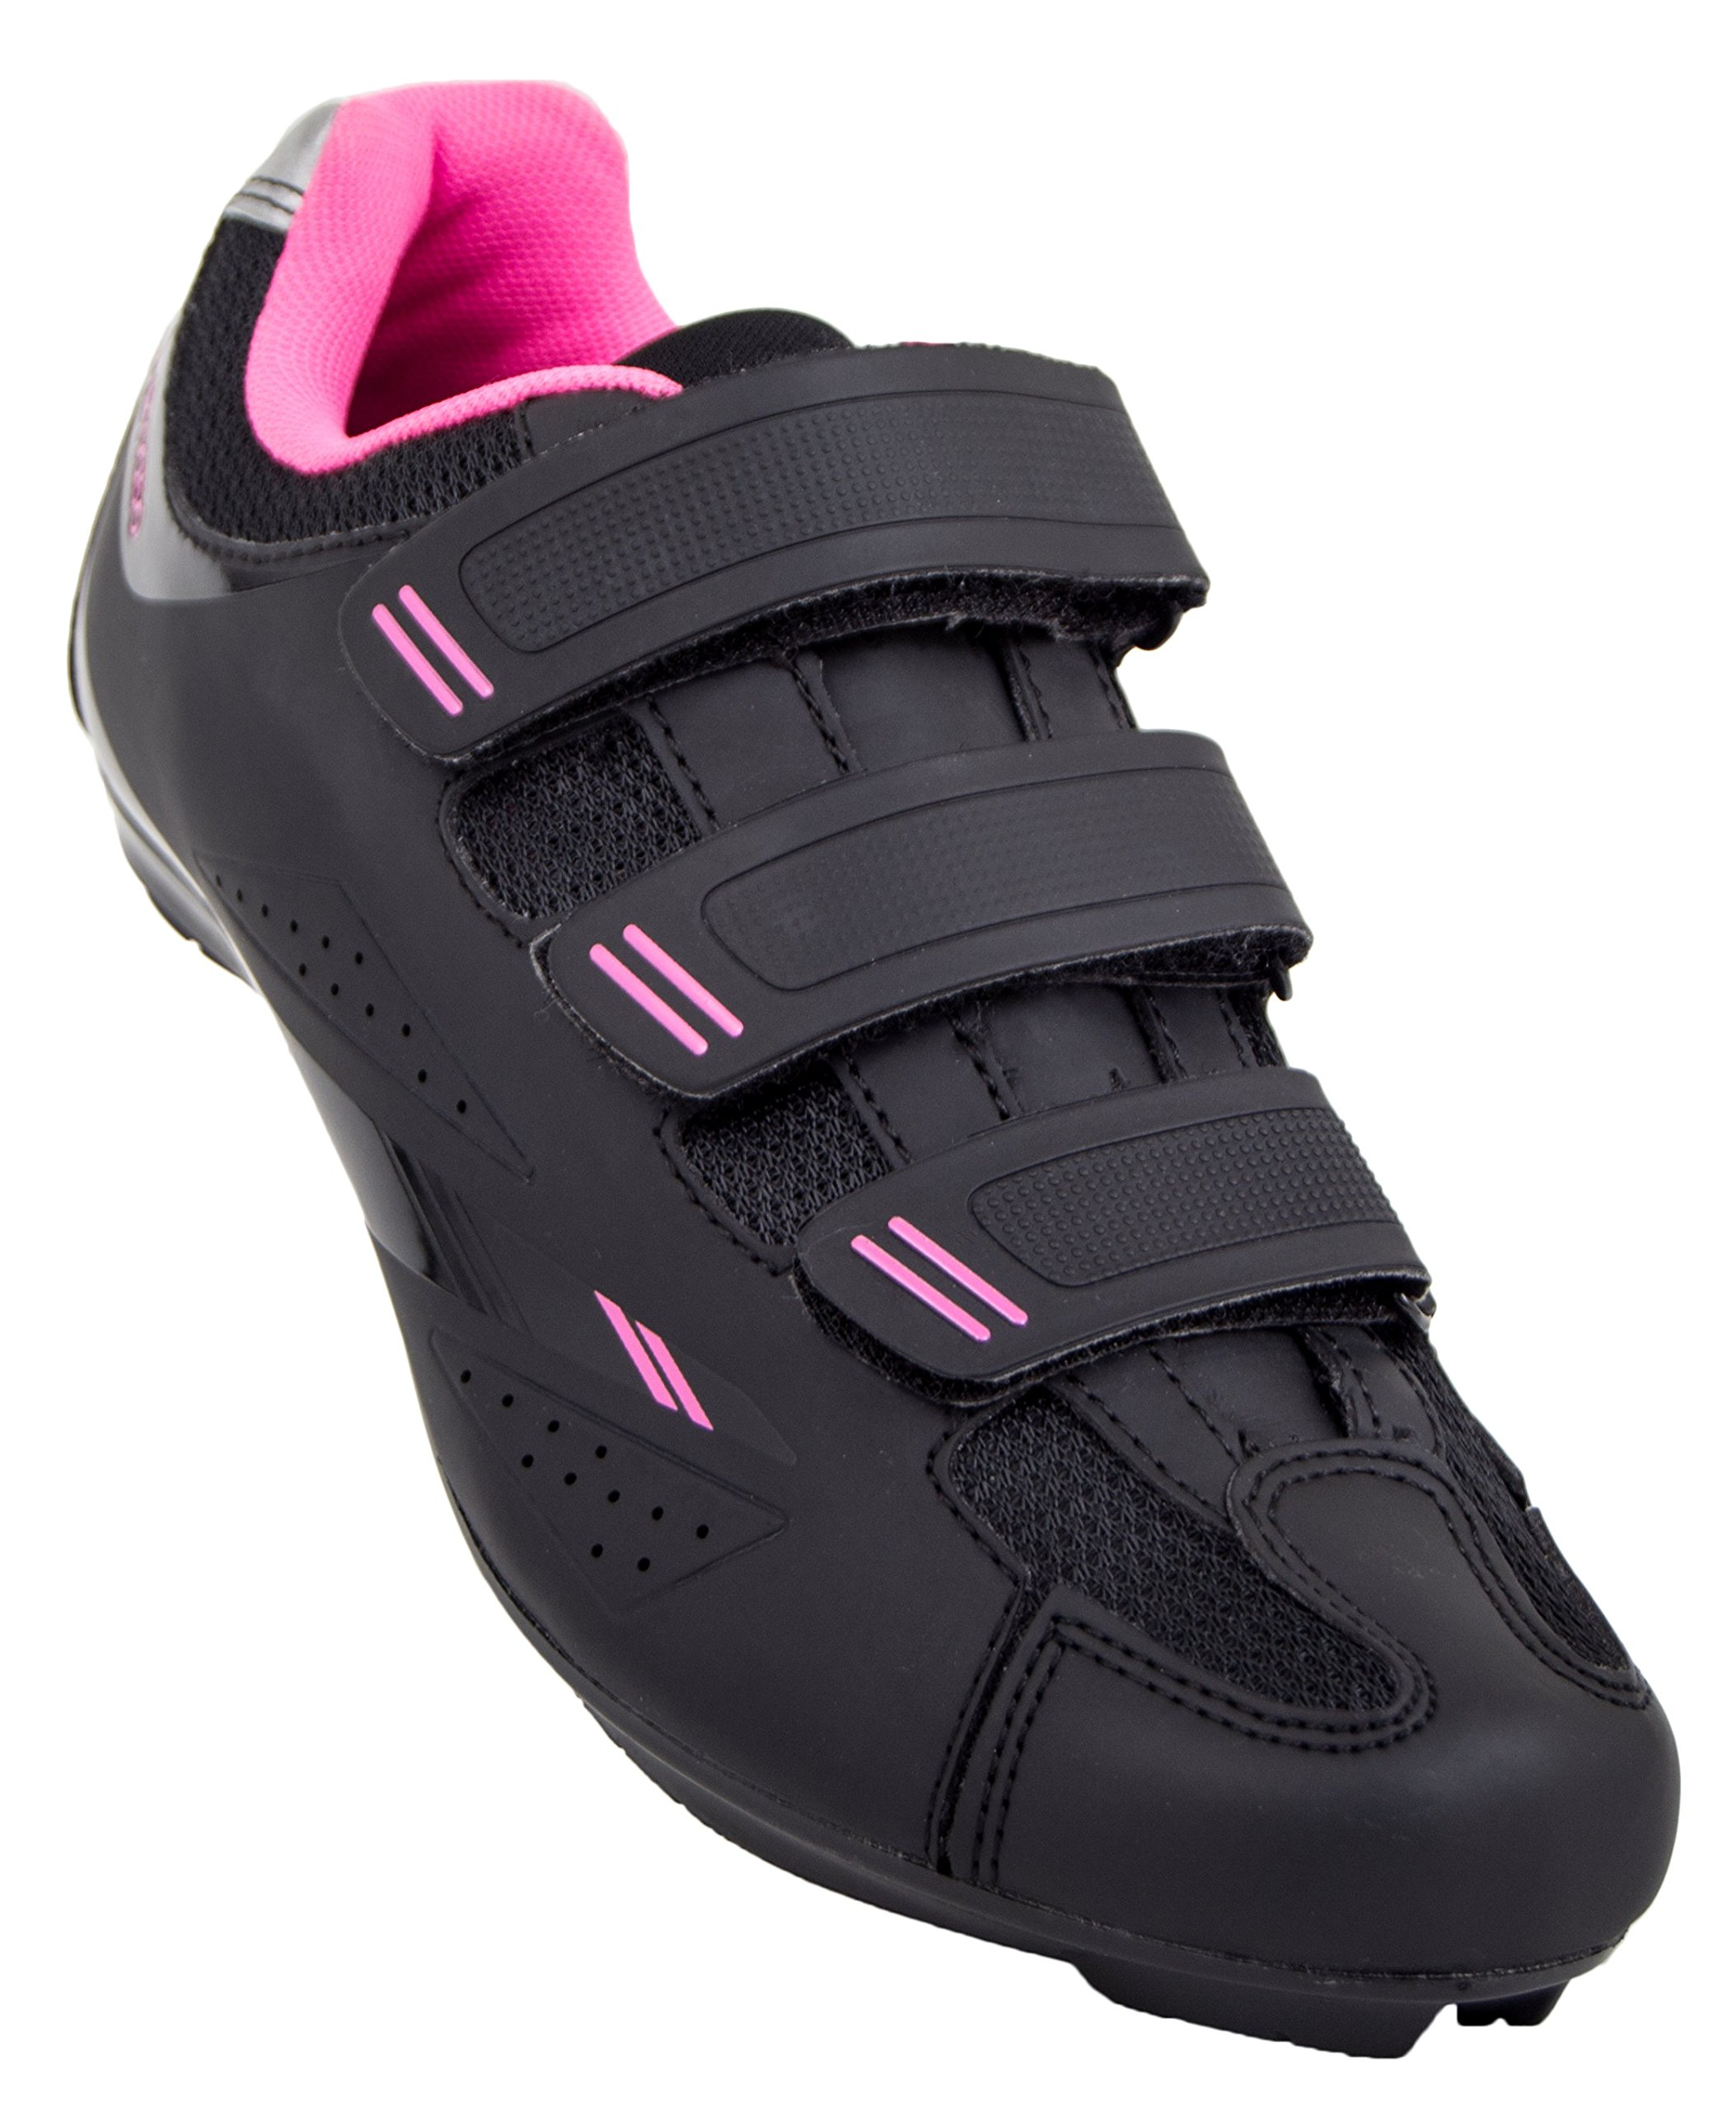 Tommaso Pista Women's Road Bike Cycling Spin Shoe Dual Cleat Compatibility - Black/Pink - 41